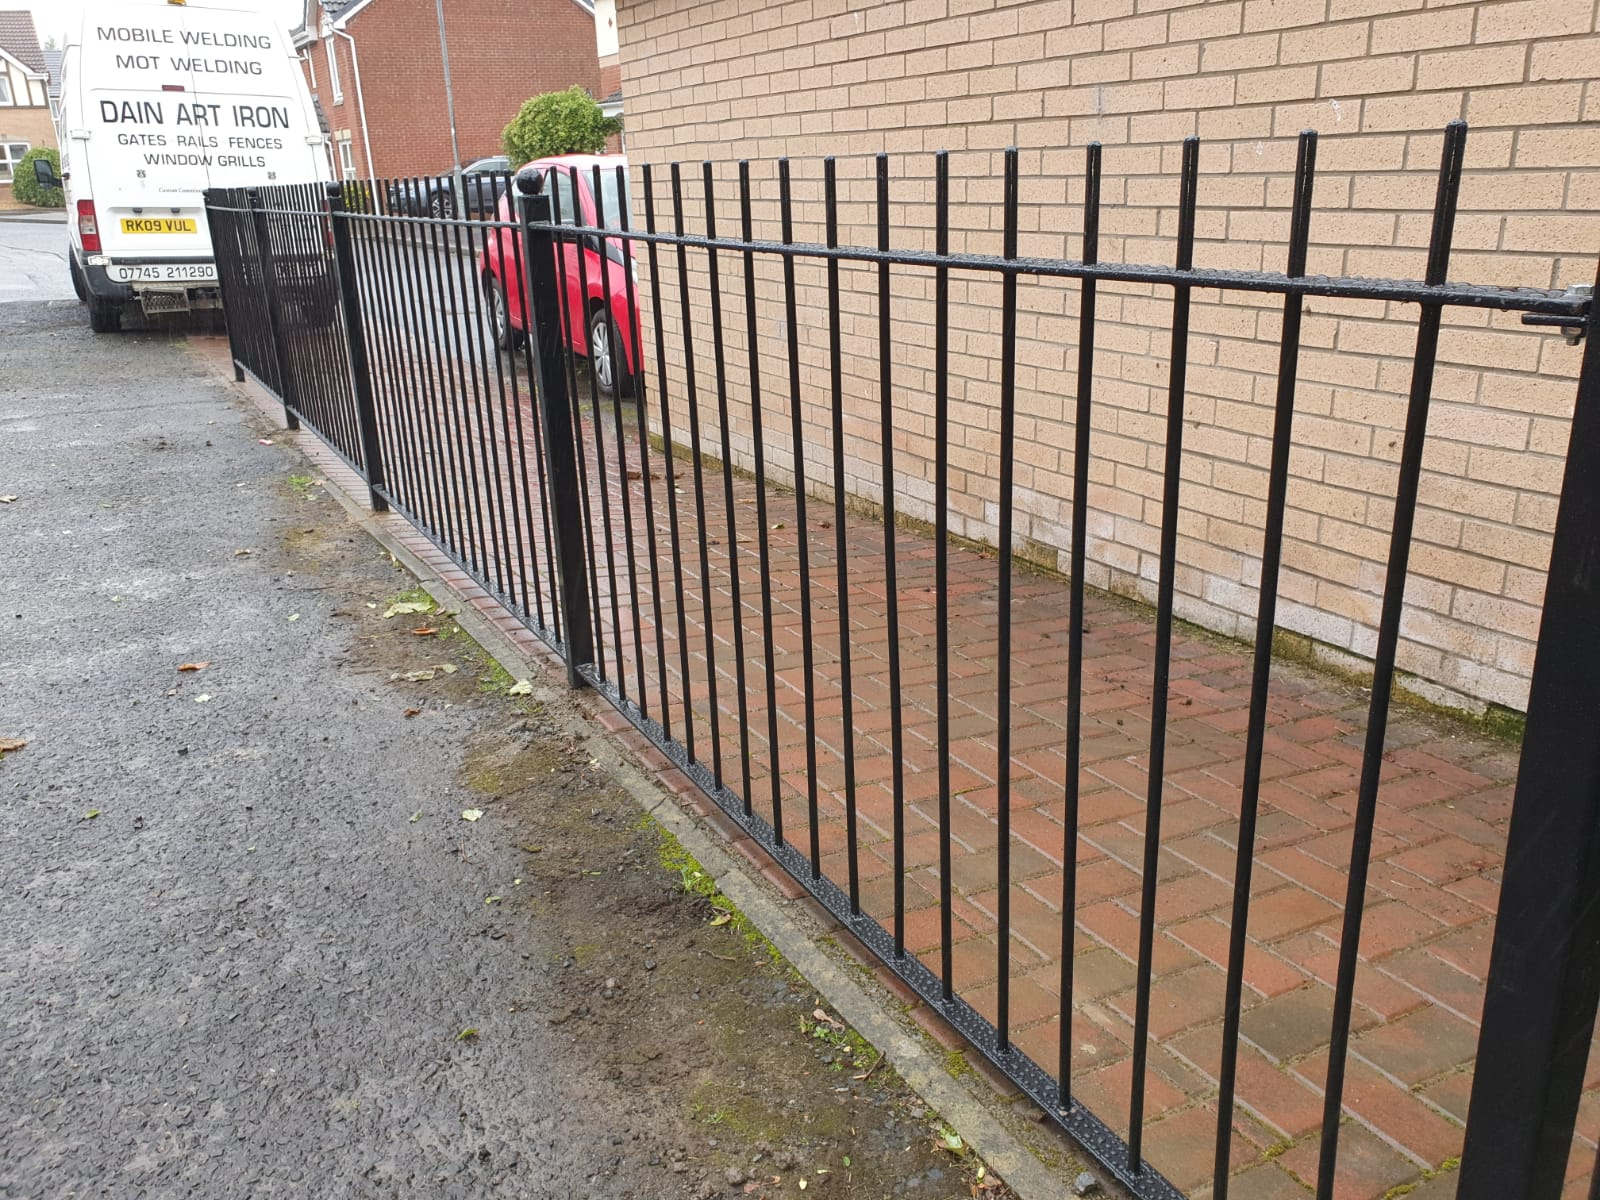 metal fencing fabricated and installed by Dain Art Iron, Ayrshire Scotland.